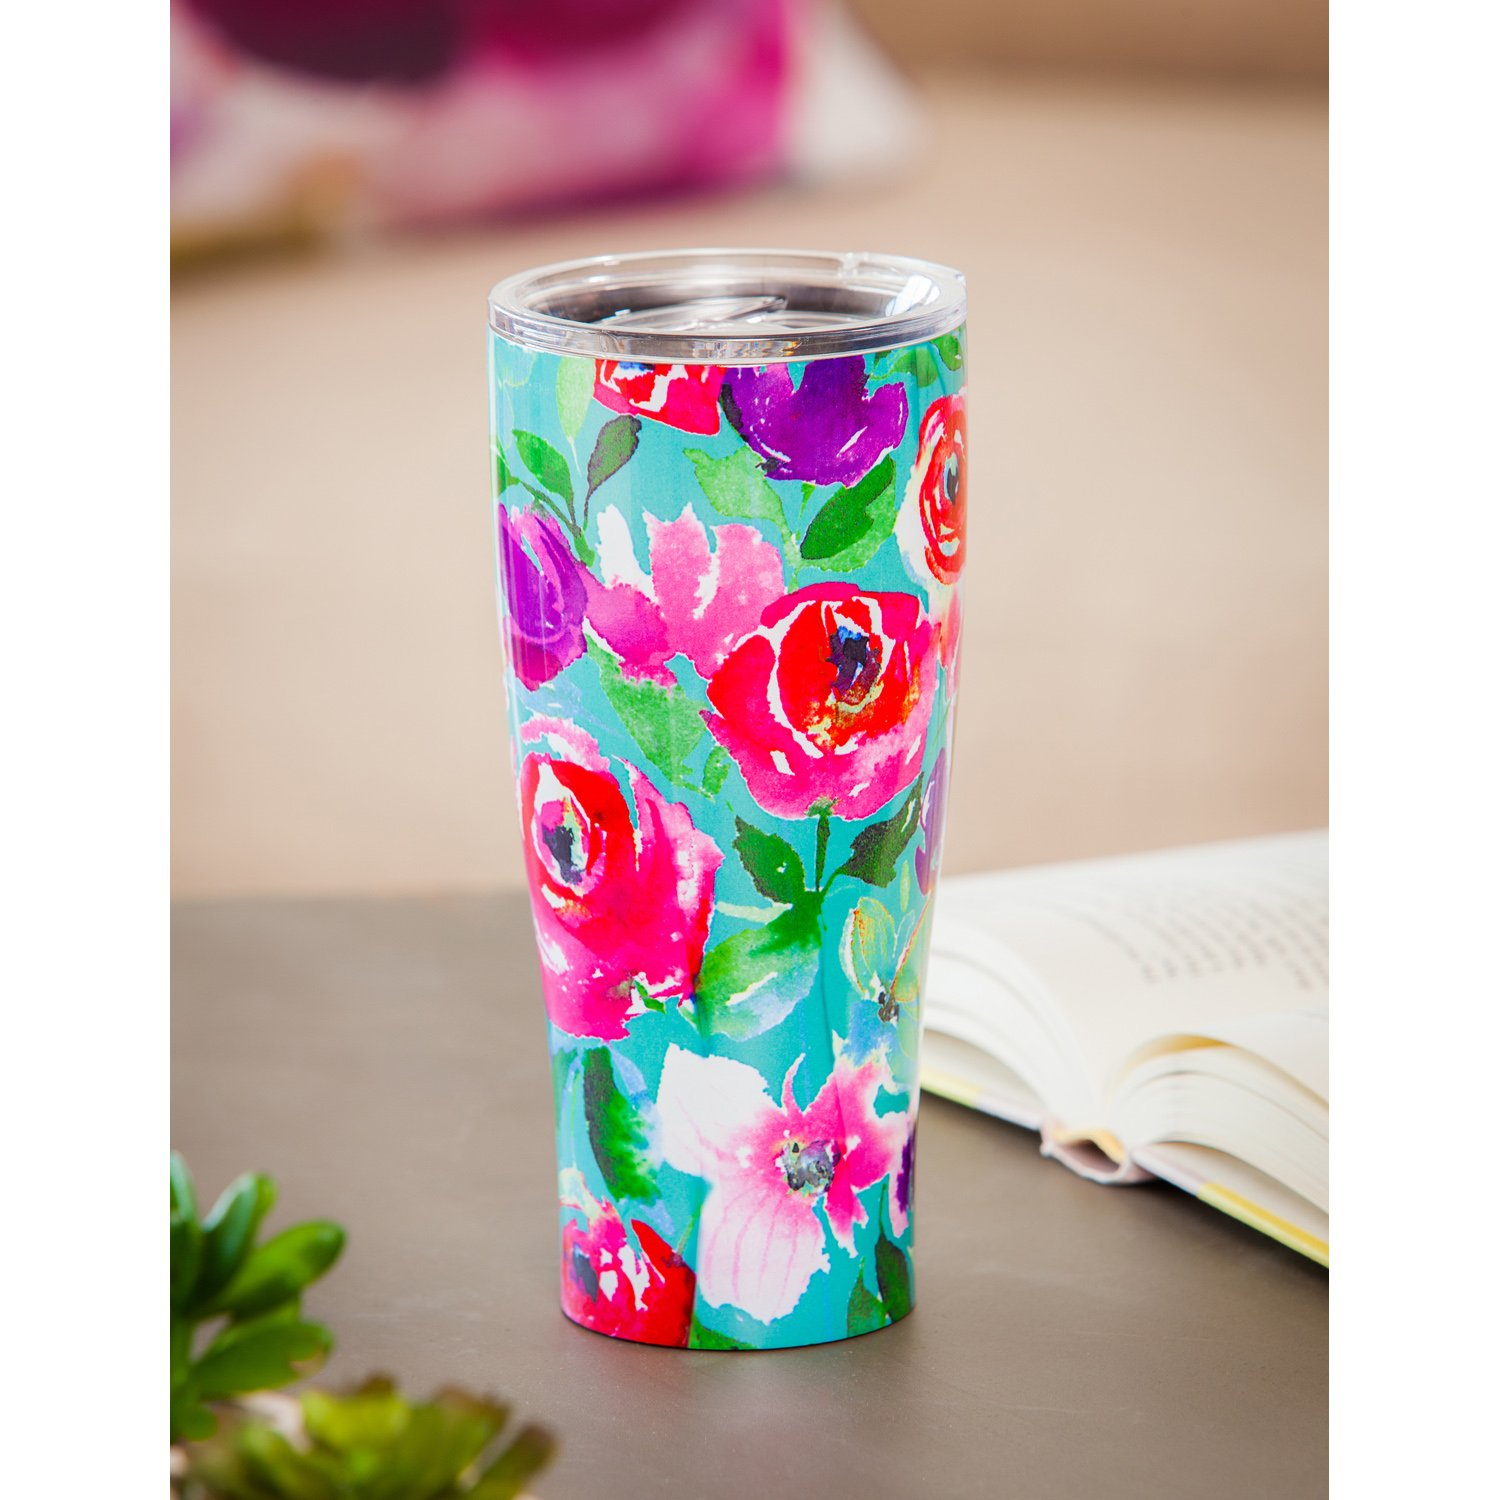 Cypress Home Boho Floral Party Stainless Steel Hot Beverage Travel Cup, 17 ounces by Cypress Home (Image #4)